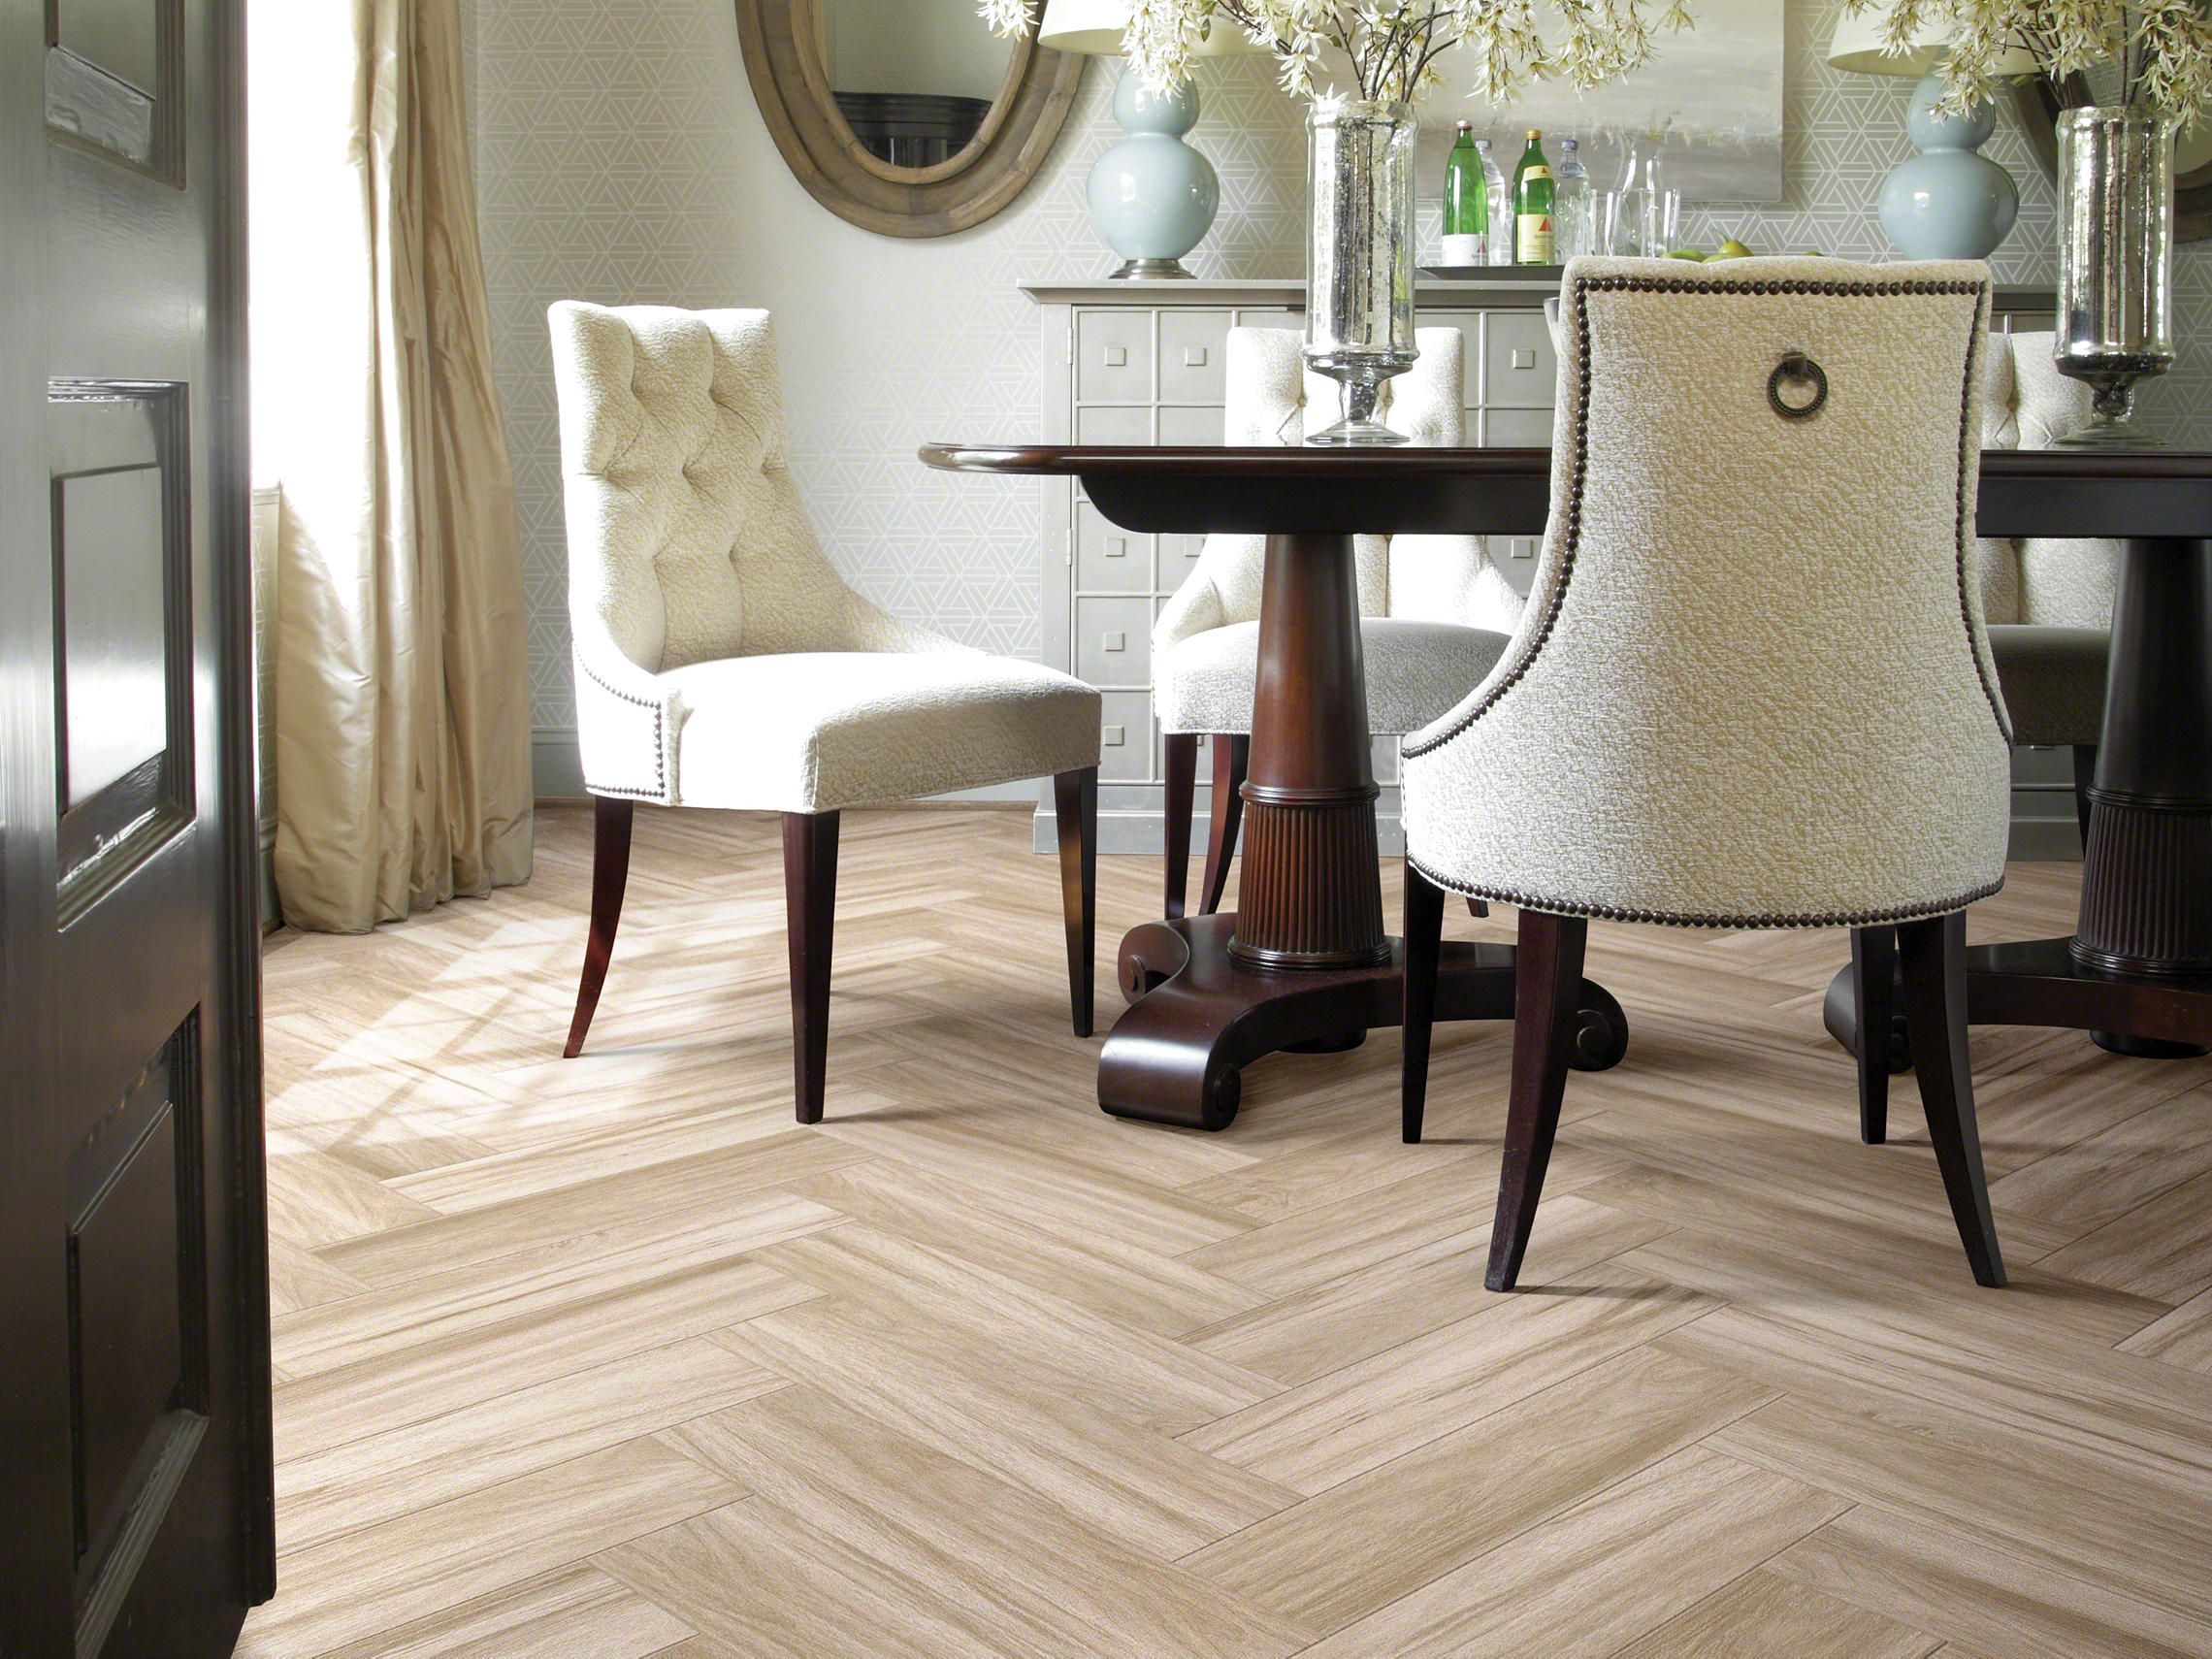 shaw floors madagascar driftwood porcelain wood tile | new house